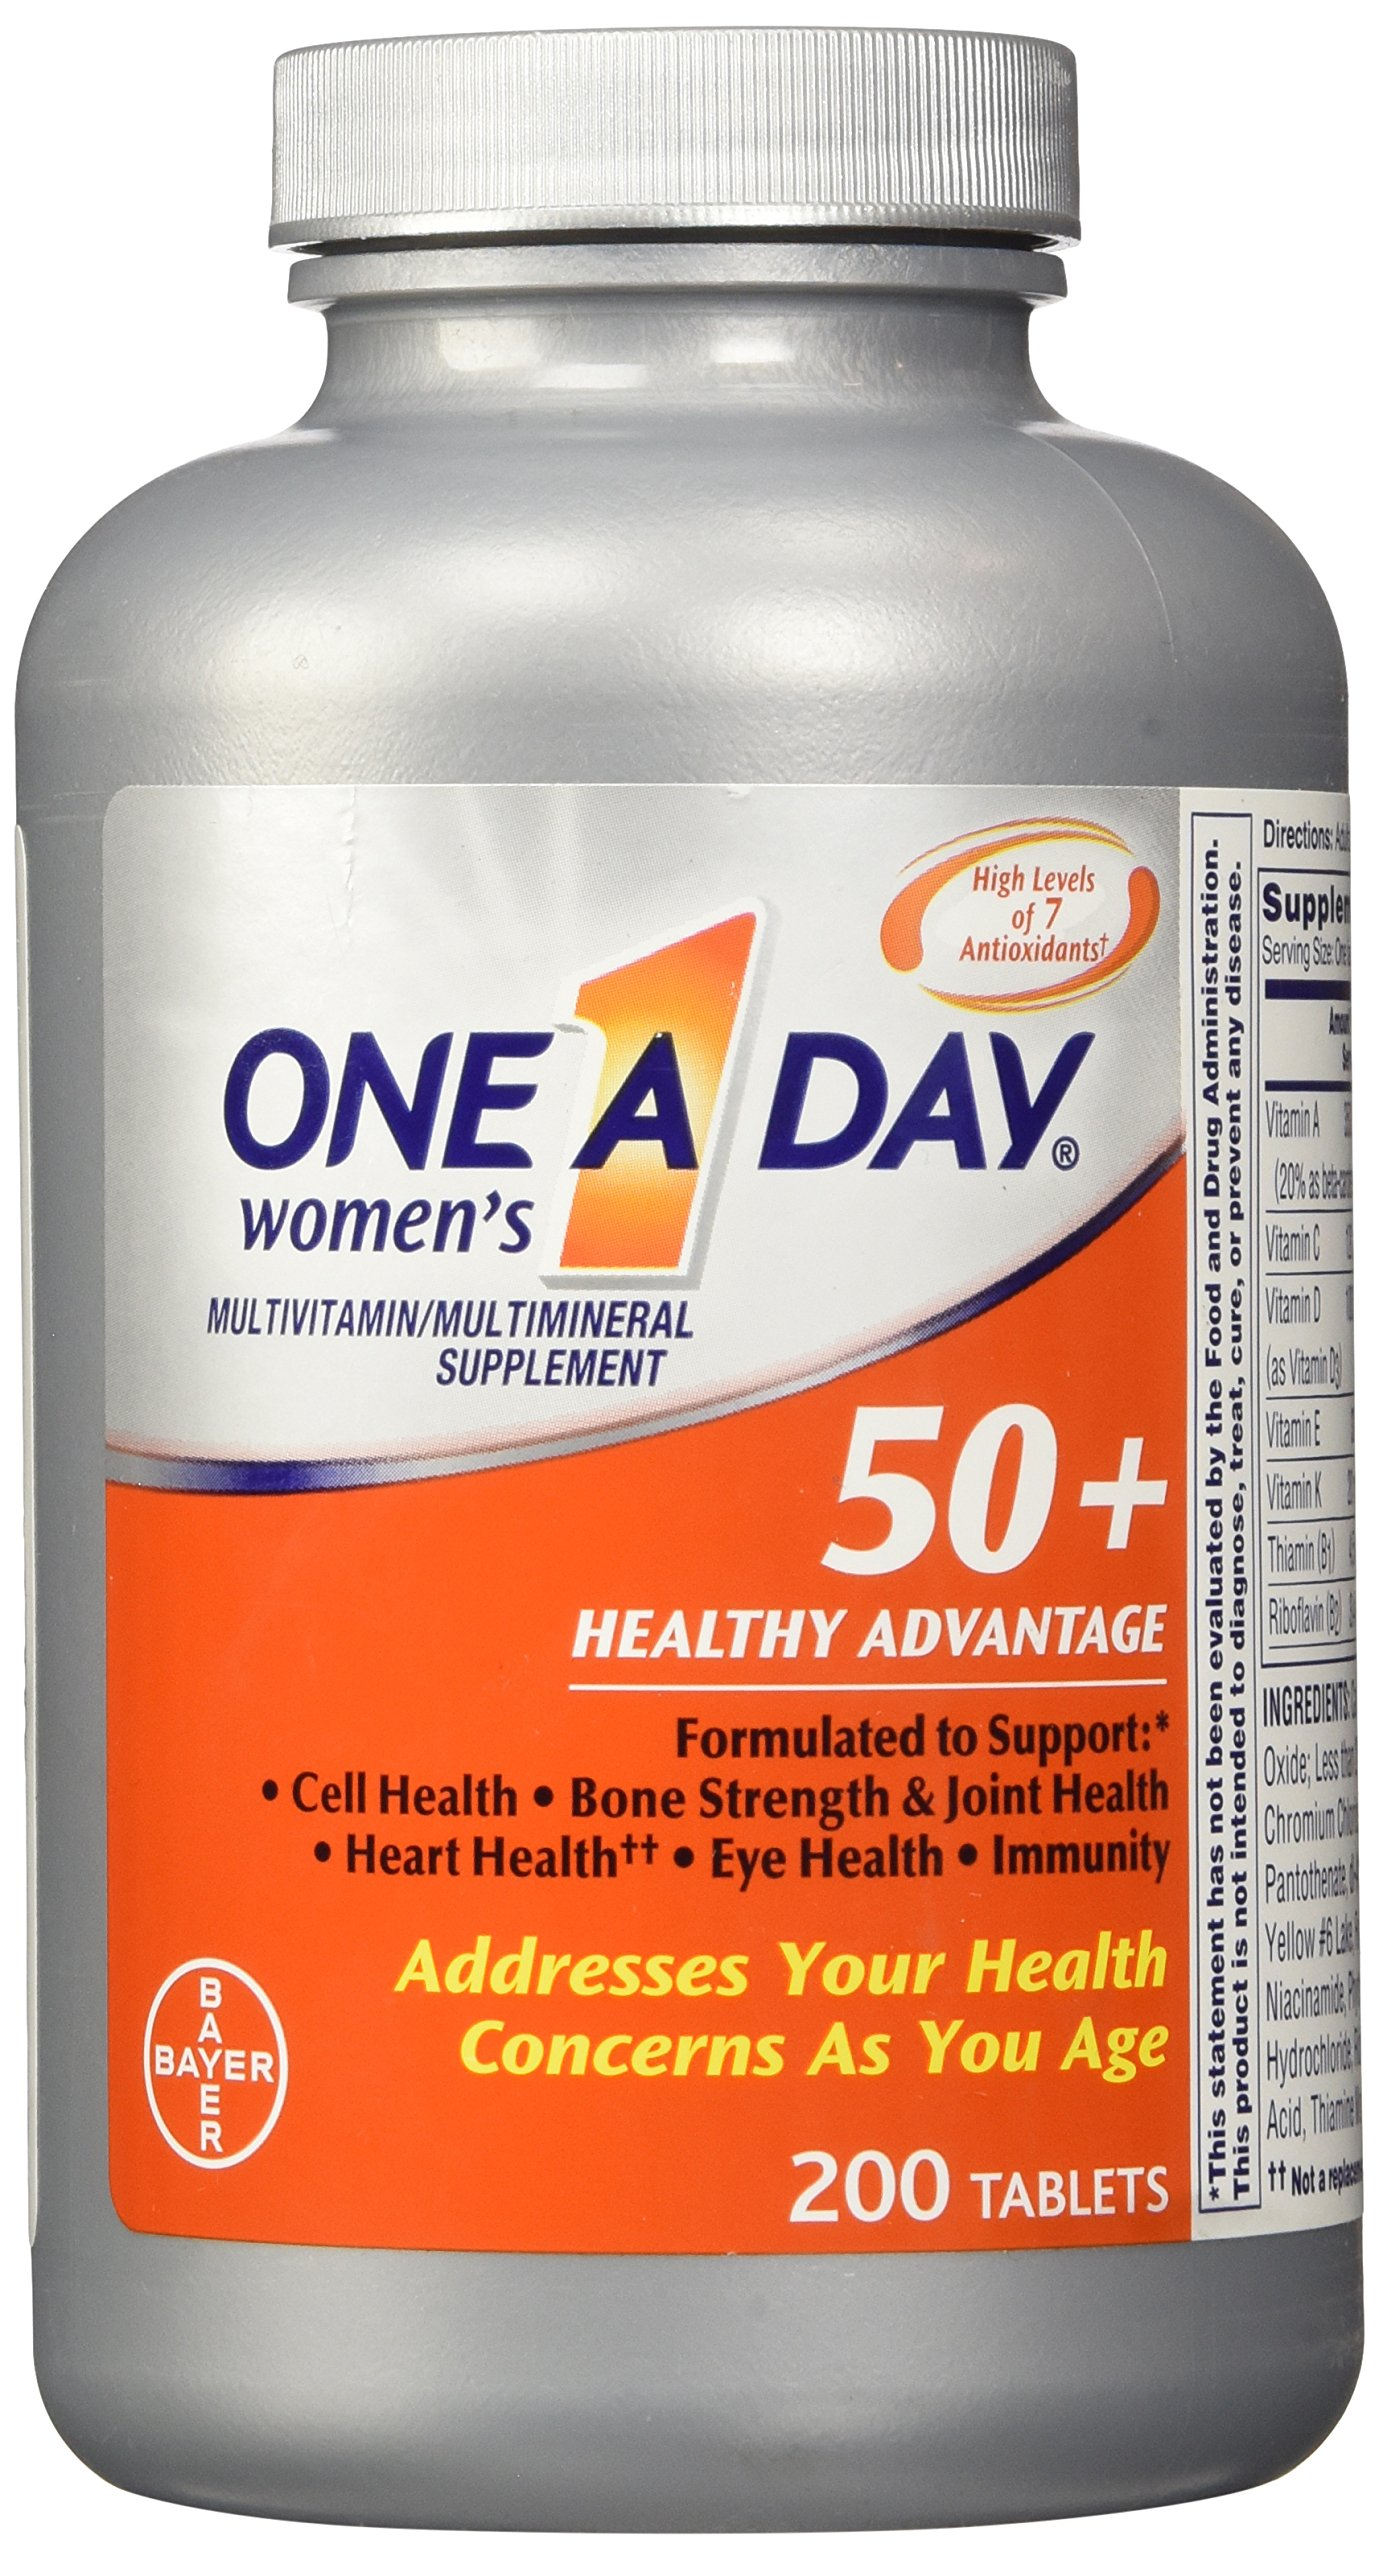 One-A-Day Mens 50 Healthy Advantage Reviews One-A-Day Mens 50 Healthy Advantage Reviews new photo